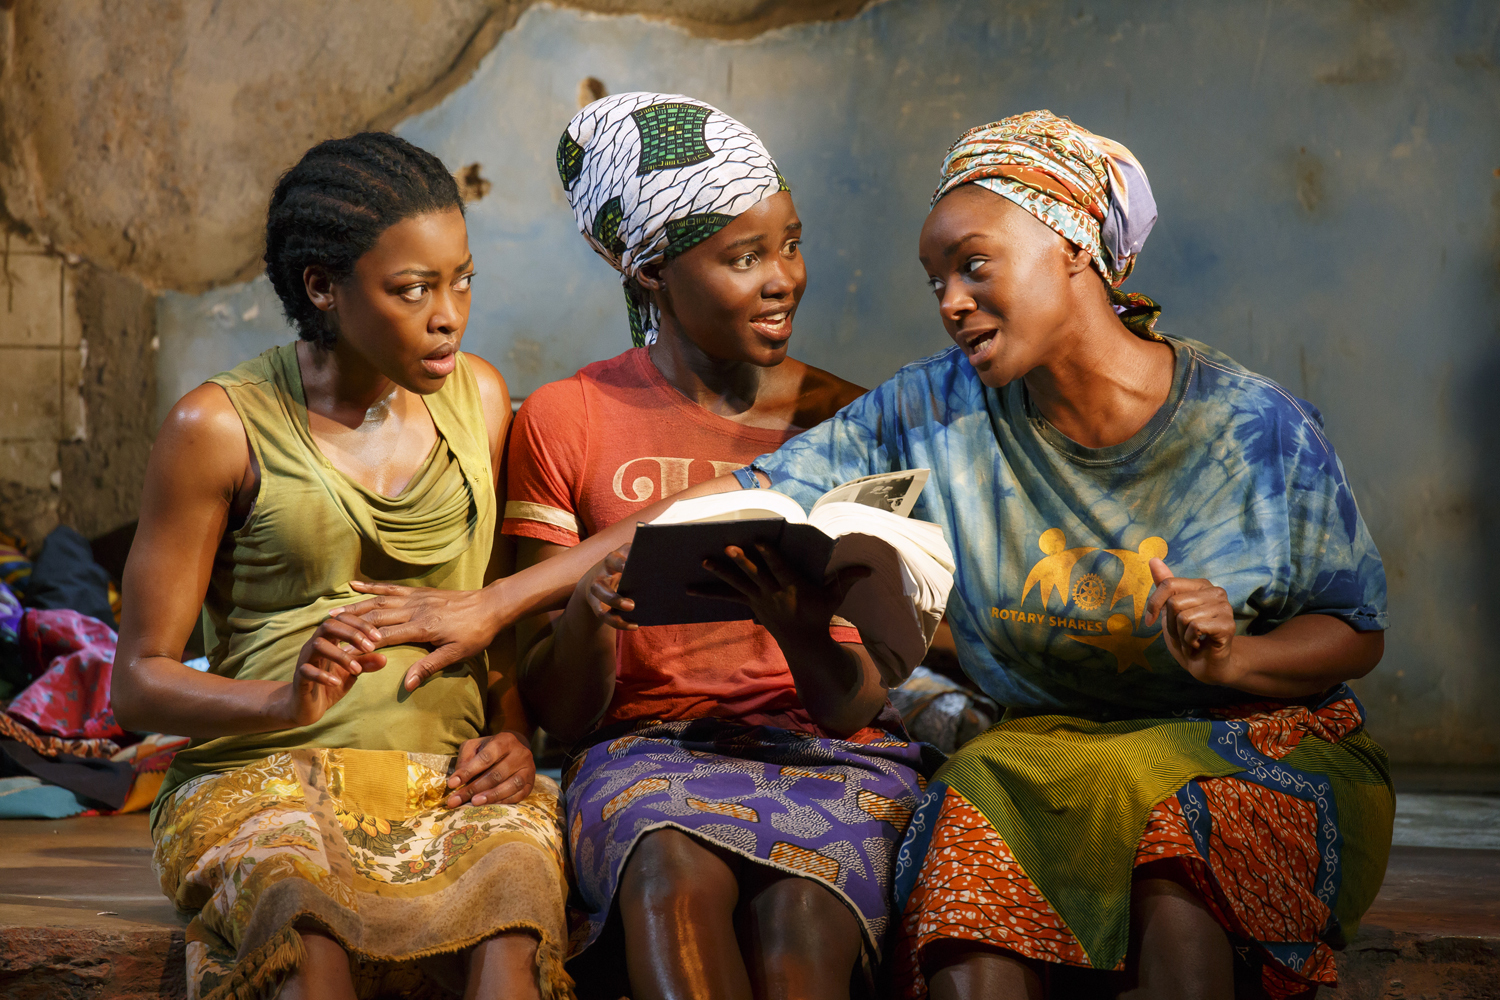 'Zimerican' Playwright Danai Gurira Brings African Stories To American Stages